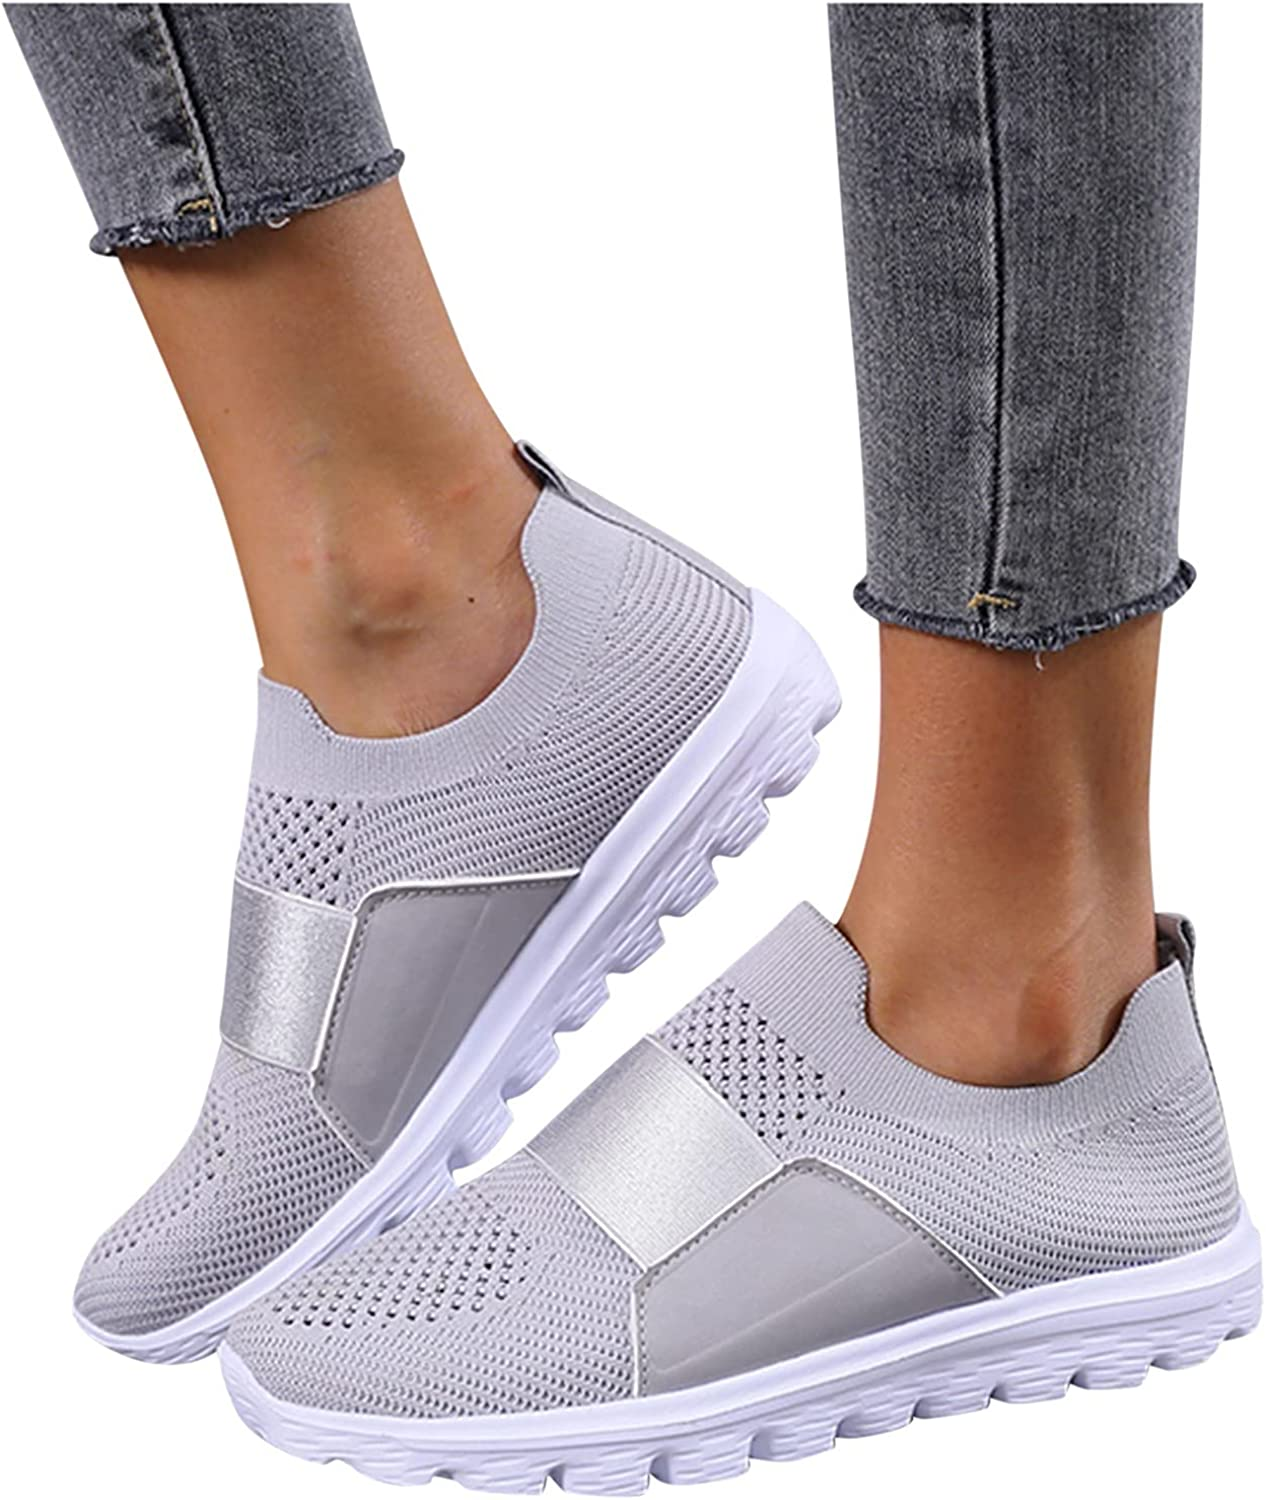 Masbird Sneakers for Women Summer Sports Slip Breathable Shoes It Outlet ☆ Free Shipping is very popular